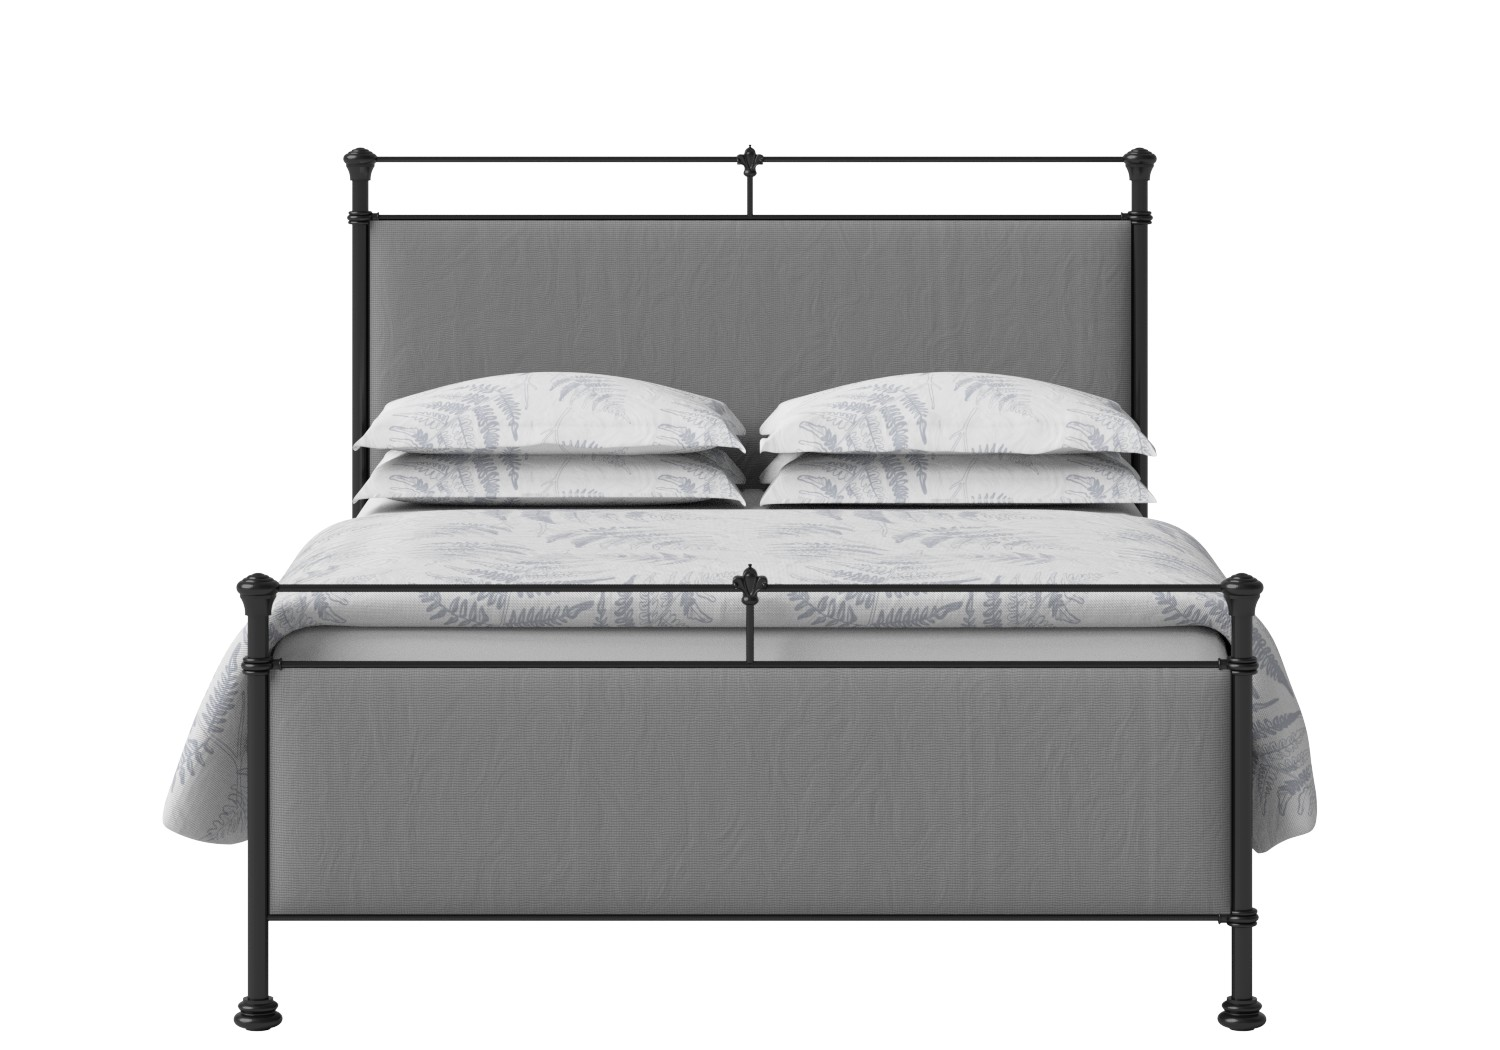 Nancy Iron/Metal Upholstered Bed in Satin Black with Grey fabric